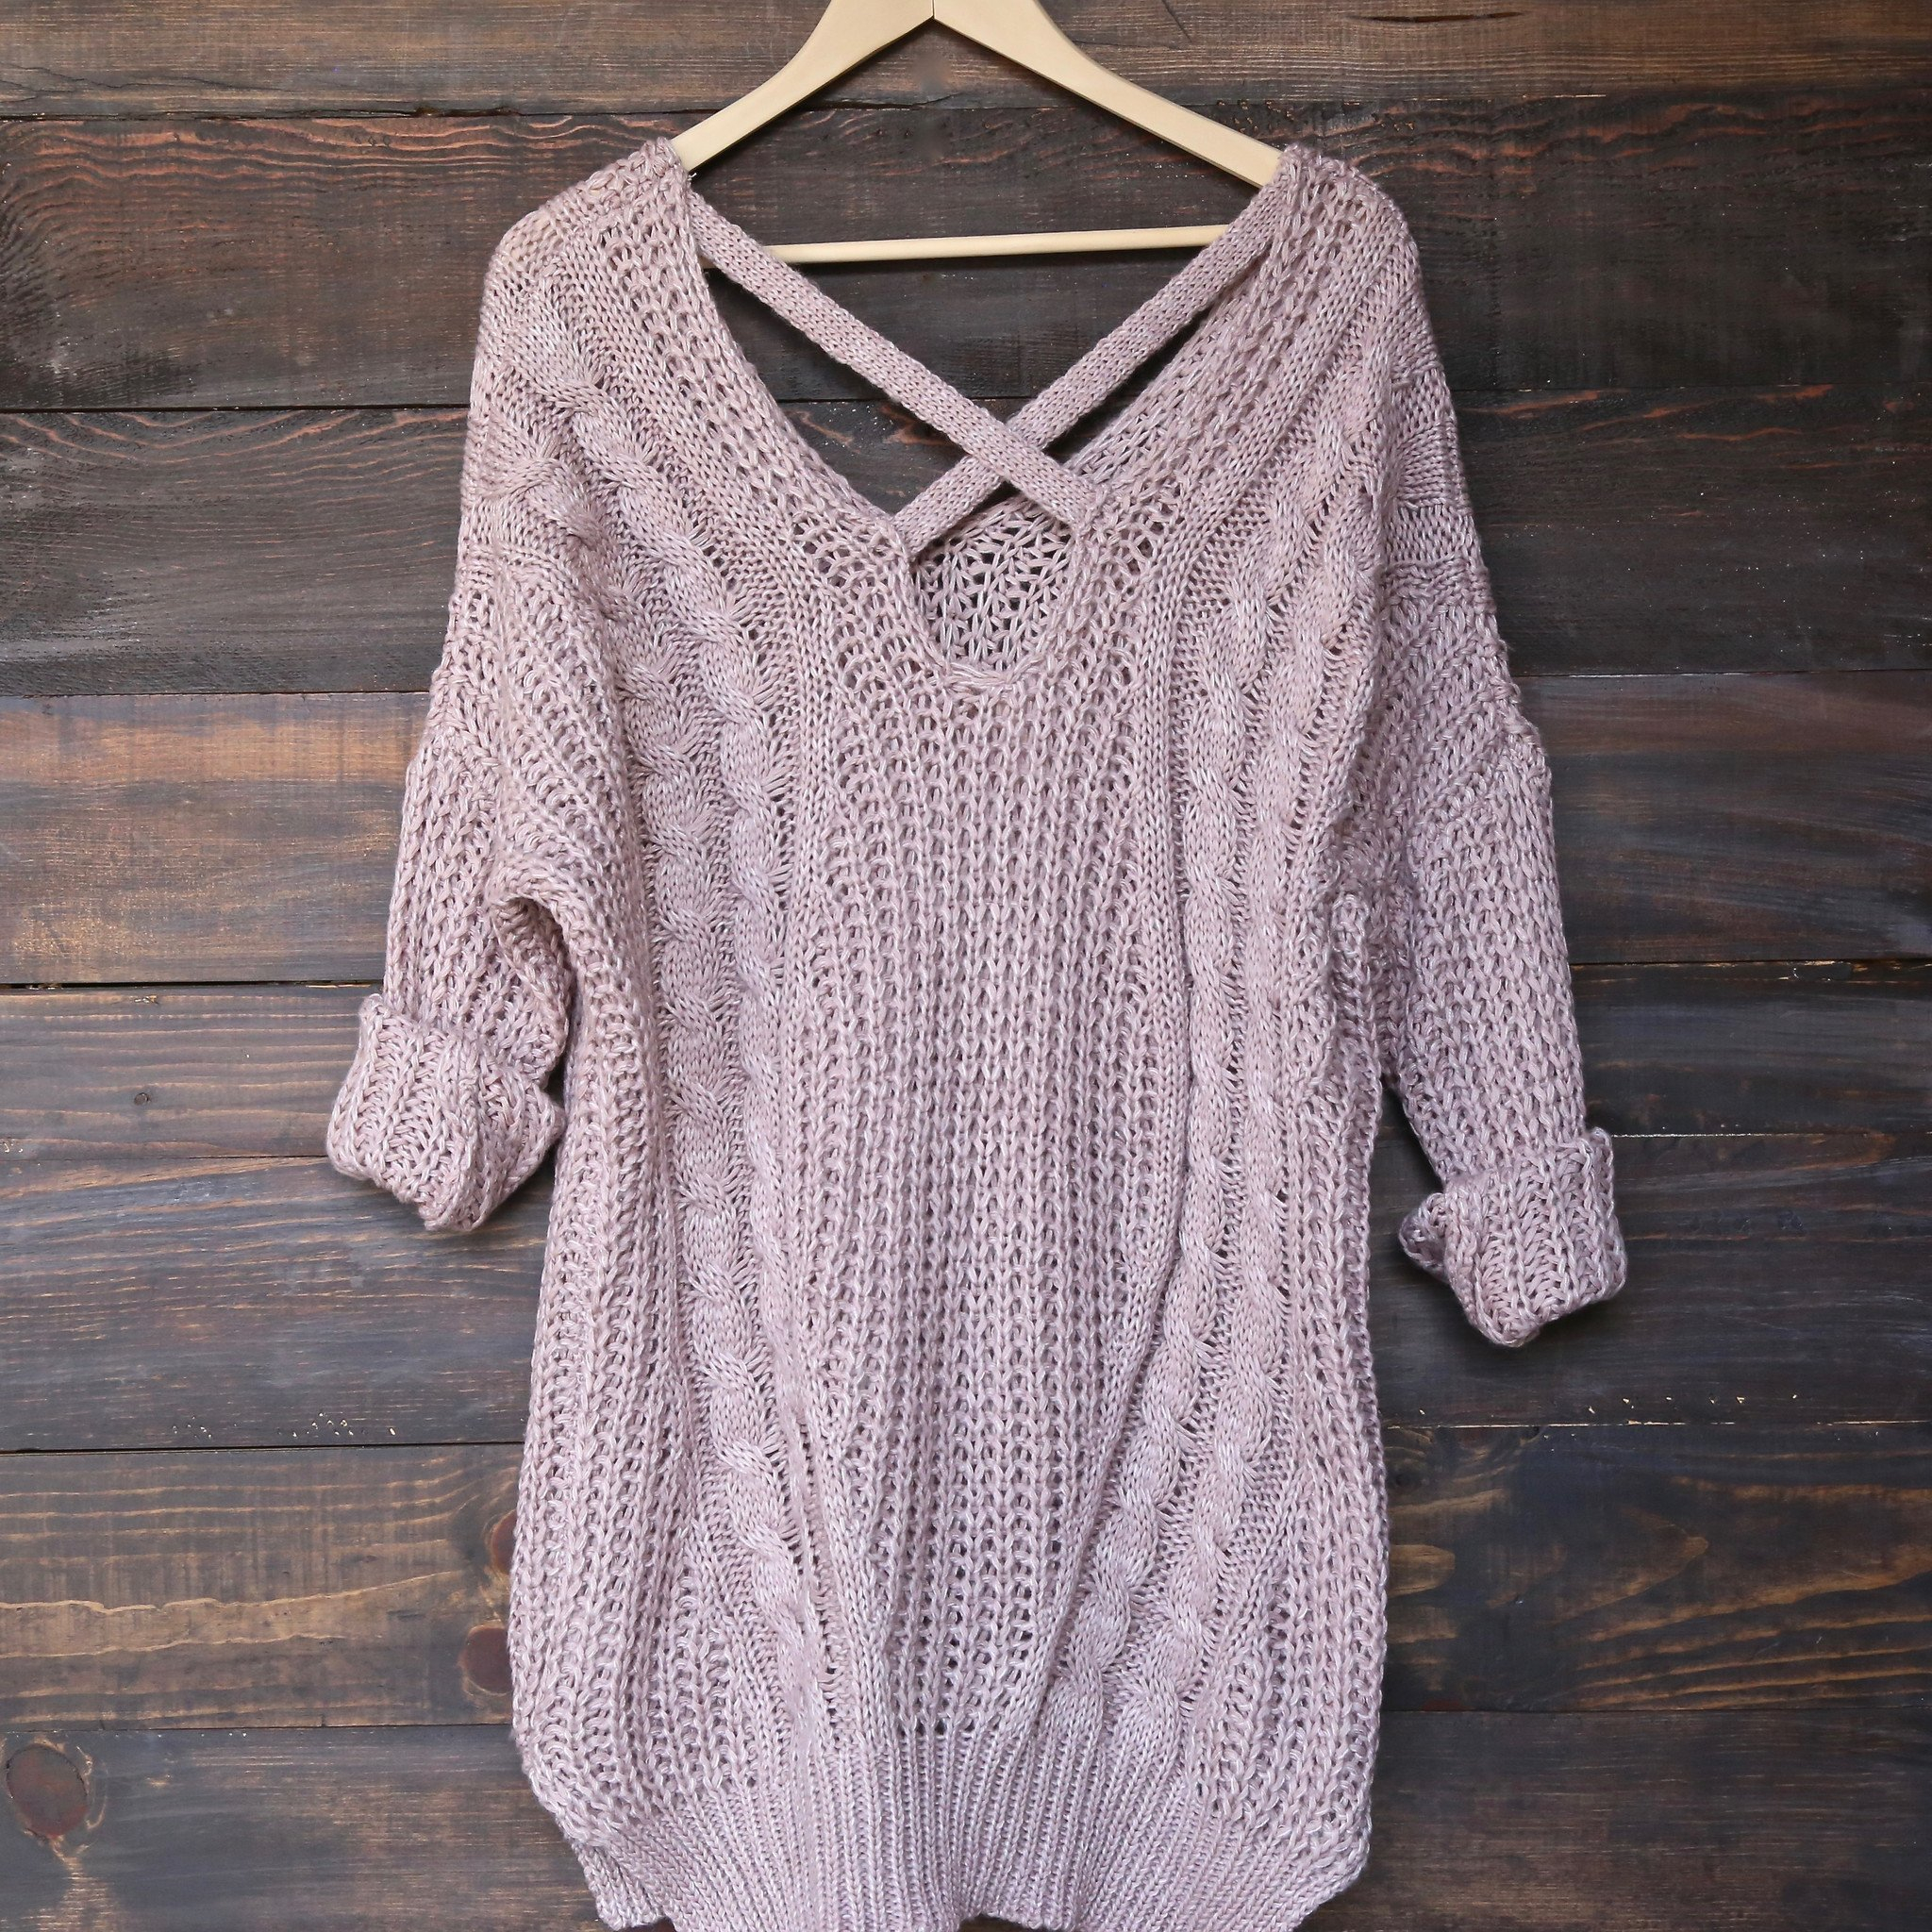 Image of Oversized Cross Back Knit Sweater in More Colors